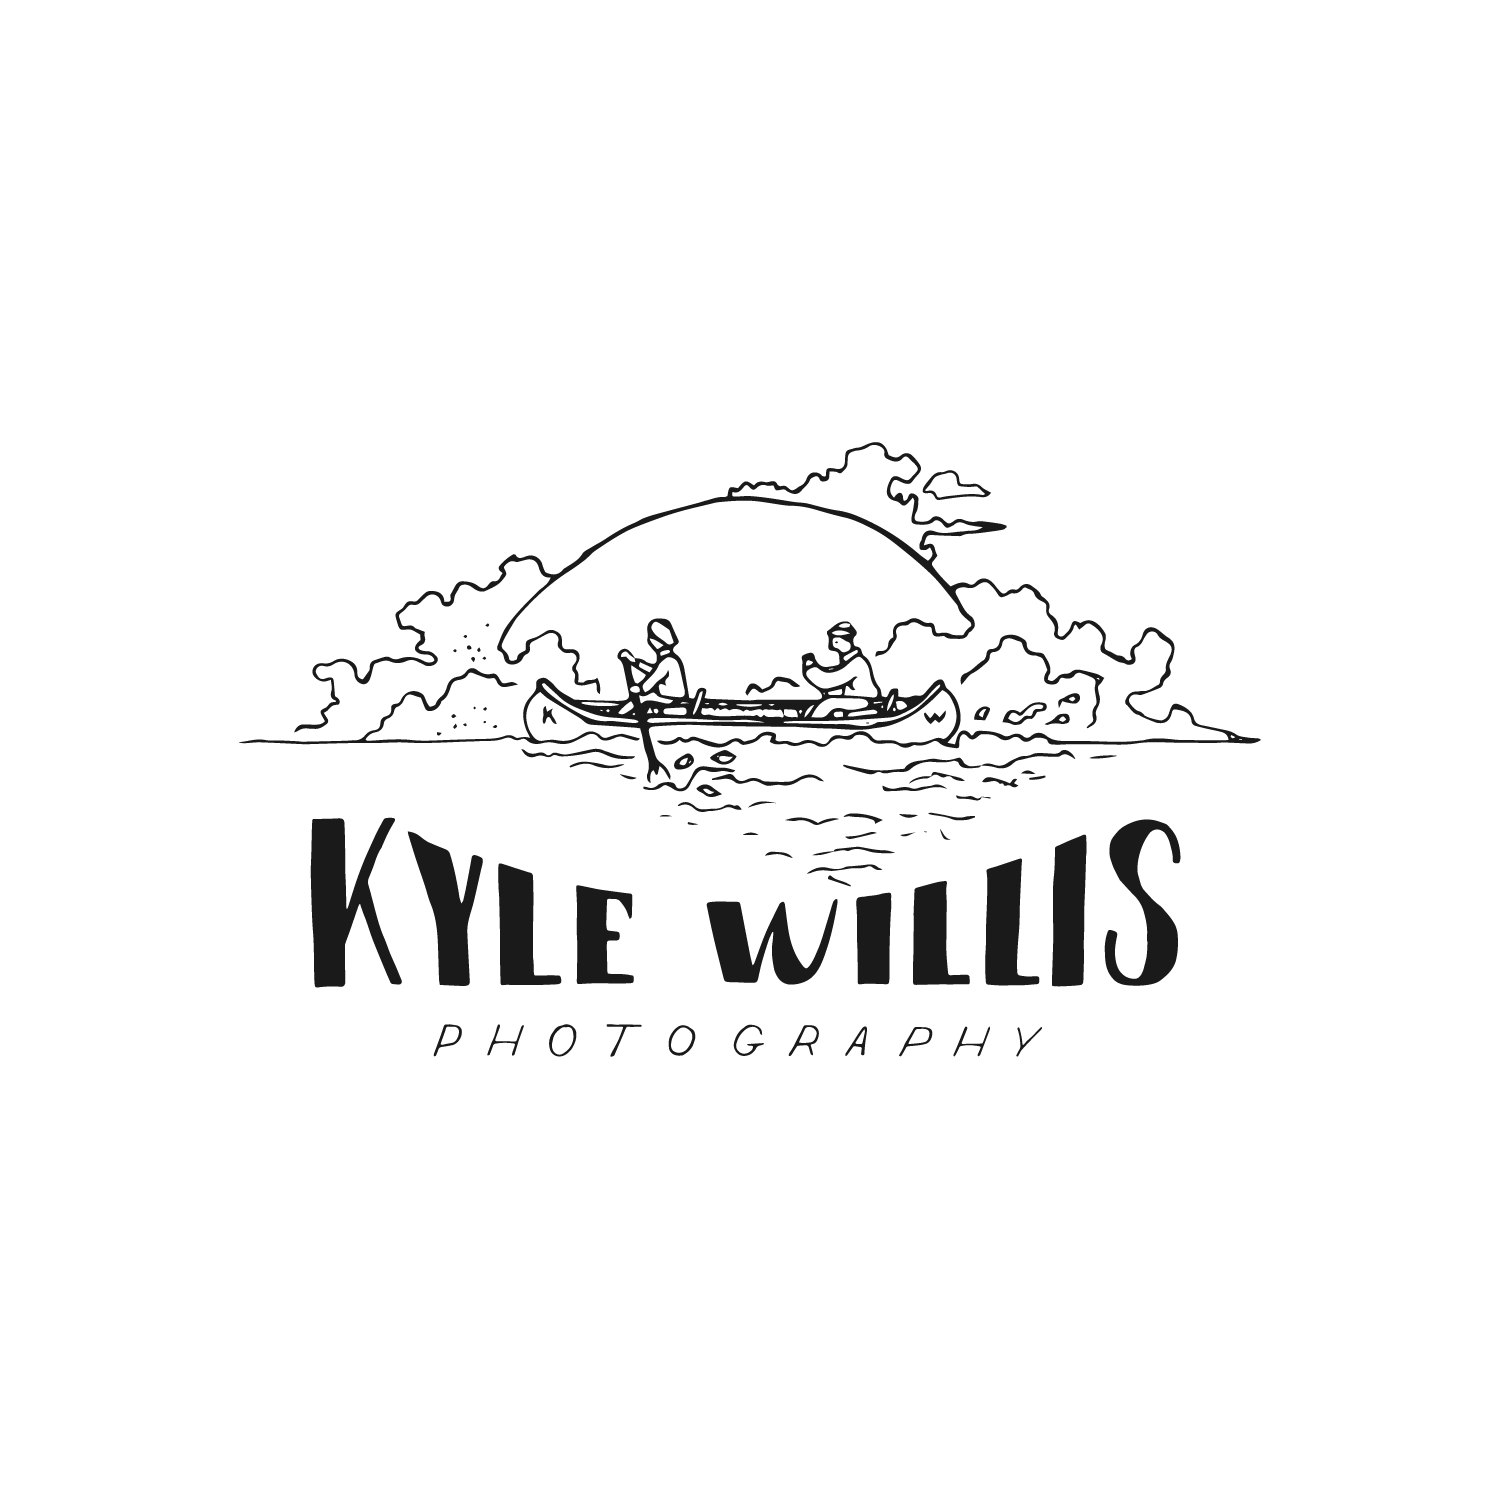 KyleWillisPhoto - Philadelphia Wedding Photographers